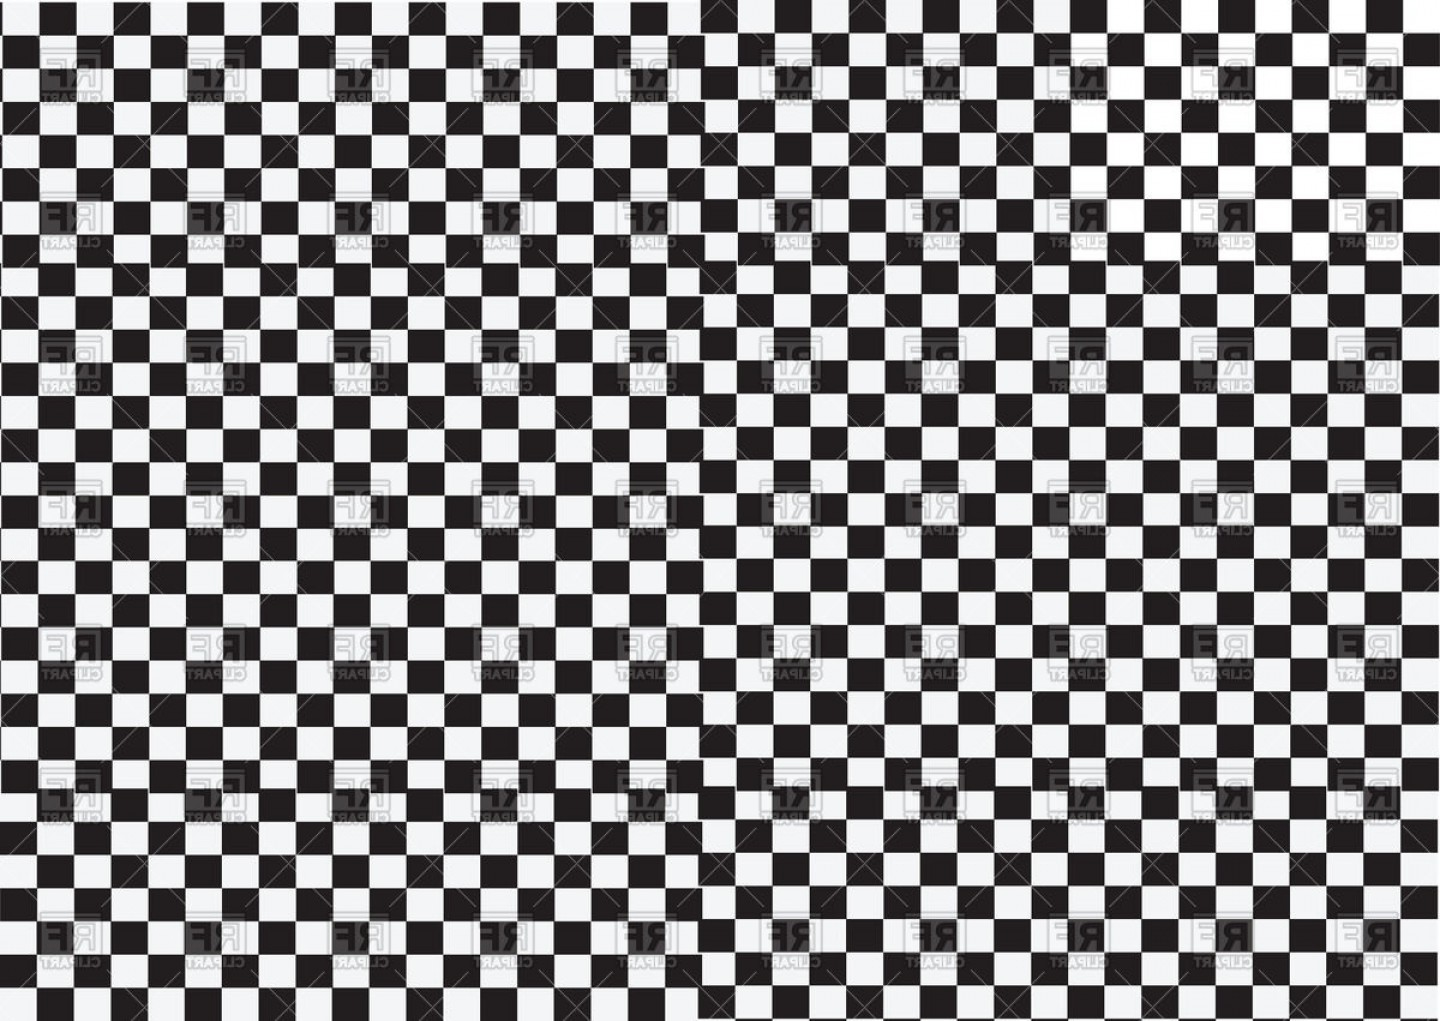 Black And White Vector Racing Graphics: Racing Flag White And Black Background With Squares Vector Clipart